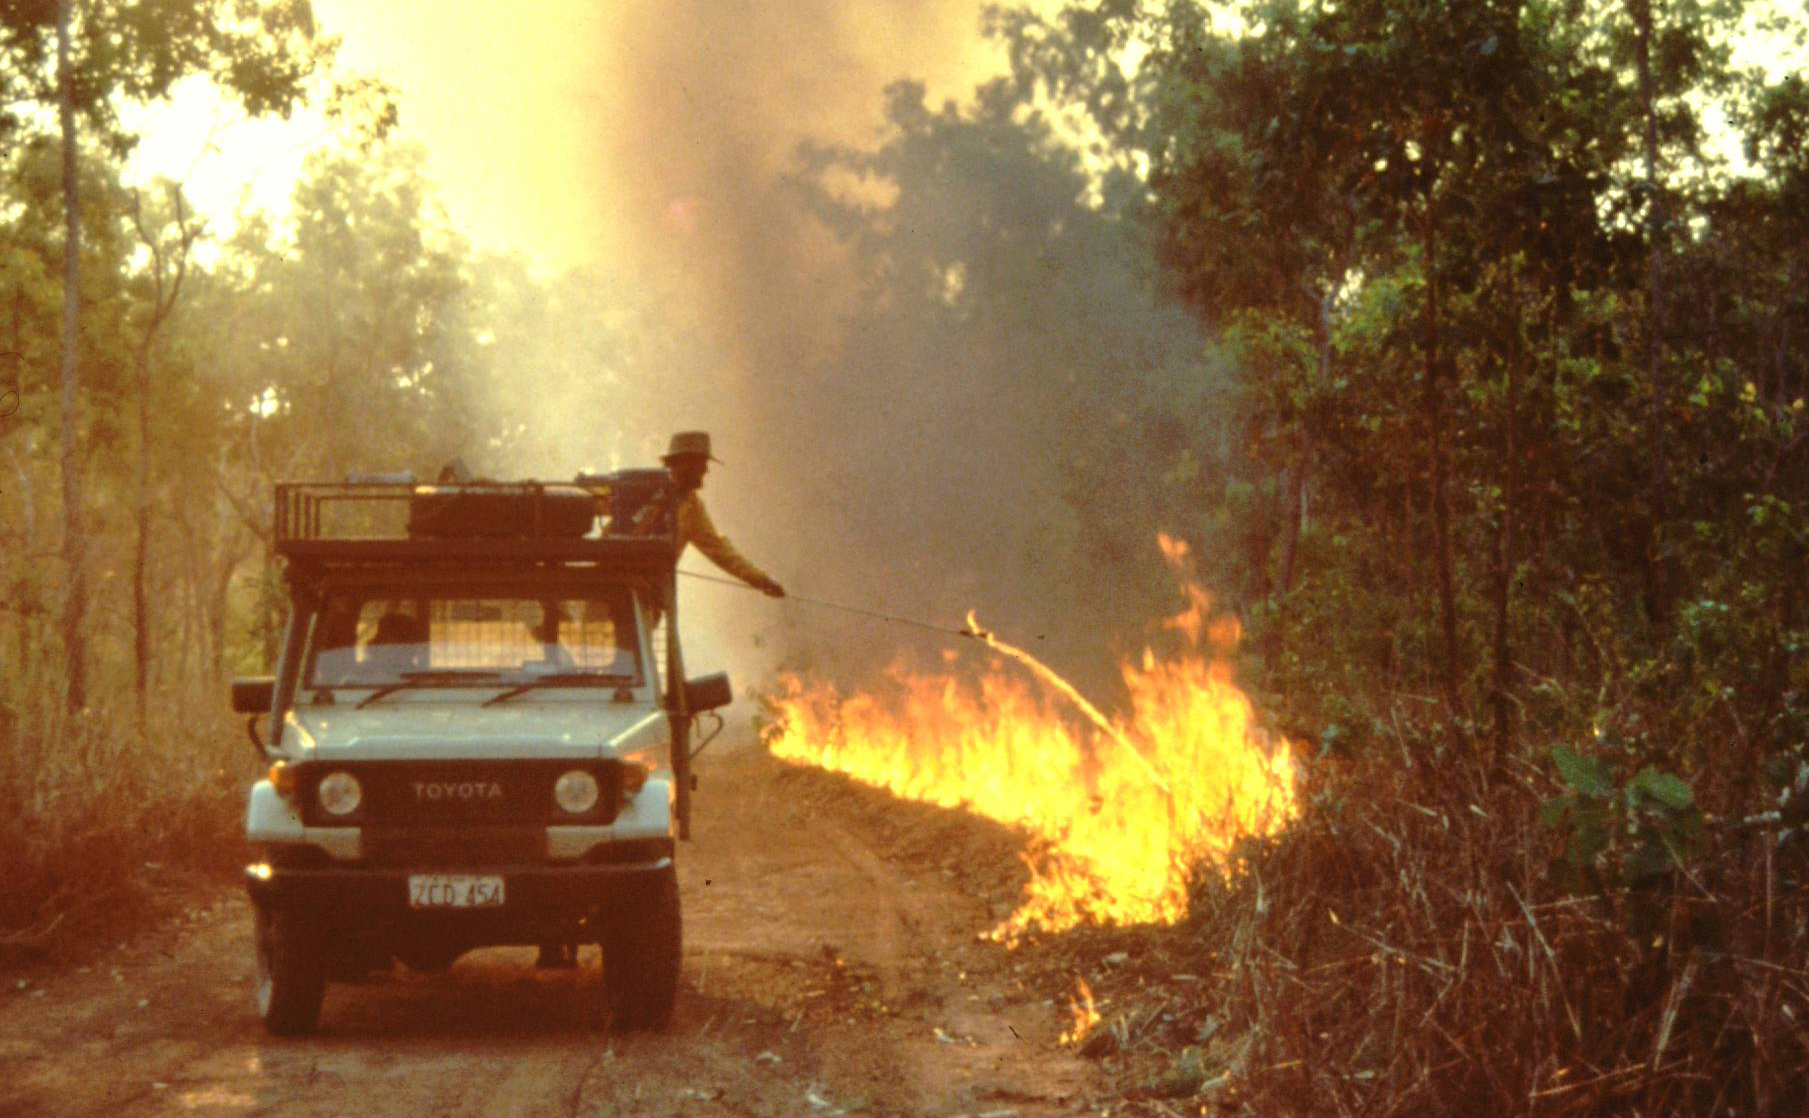 Man lighting a fire in vegetation by the roadside from the back of a four wheel drive utility vehicle